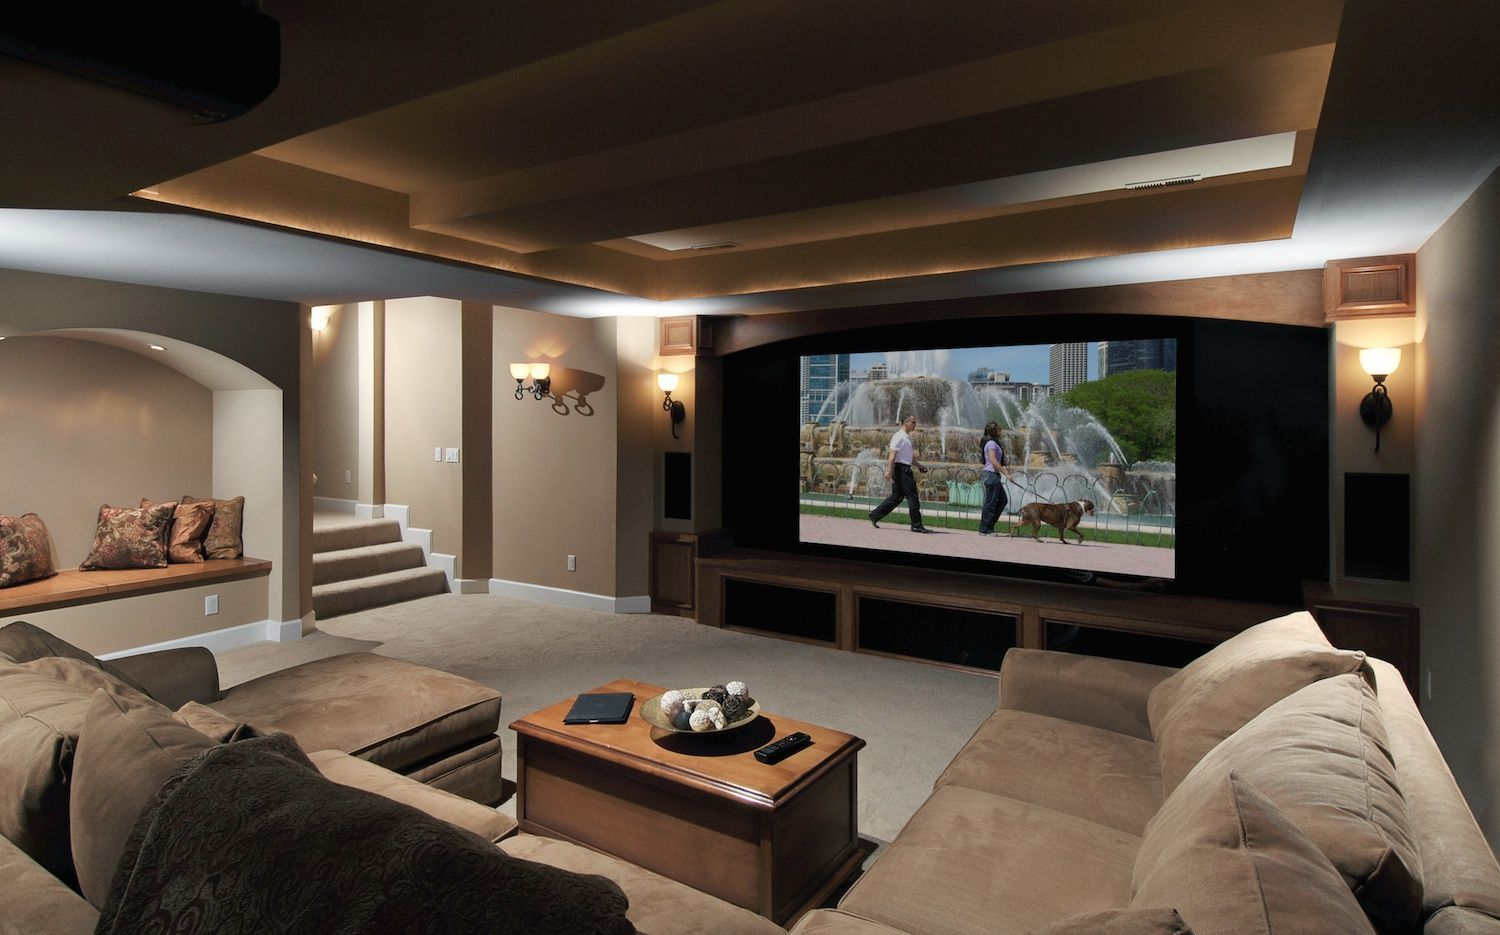 basement theater ideas. More Ideas Below: DIY Home Theater Decorations Basement Rooms Red